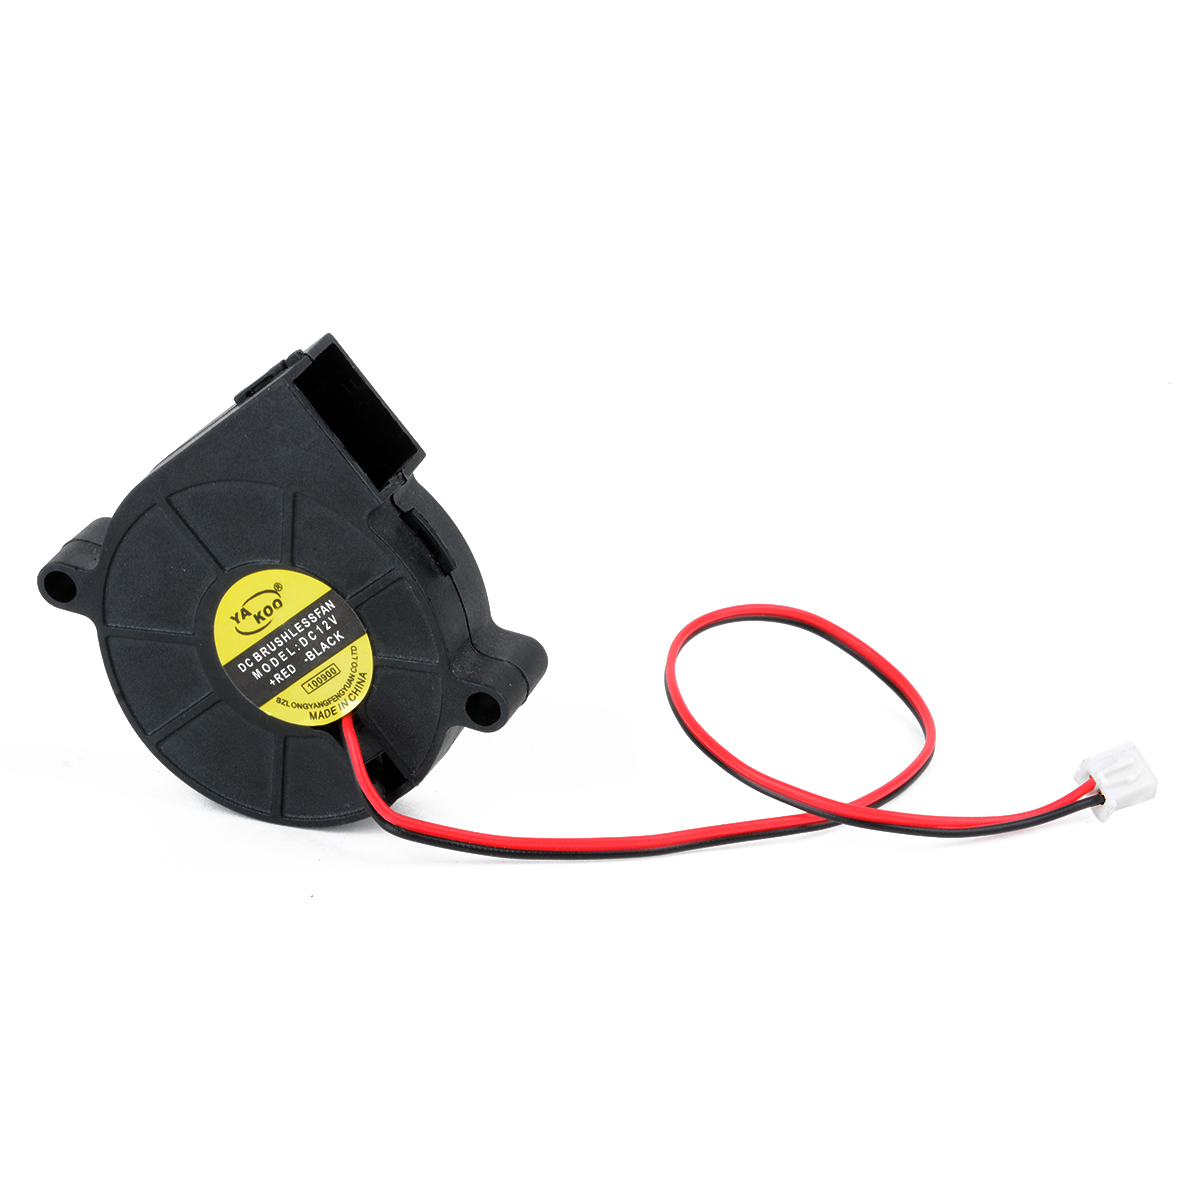 12V DC 50mm Cooling Blower Fan Hotend Extruder Air Blower For 3D Printer 50X50X15mm nmb 3610kl 05w b49 9225 24v 3 wire cooling fan blower